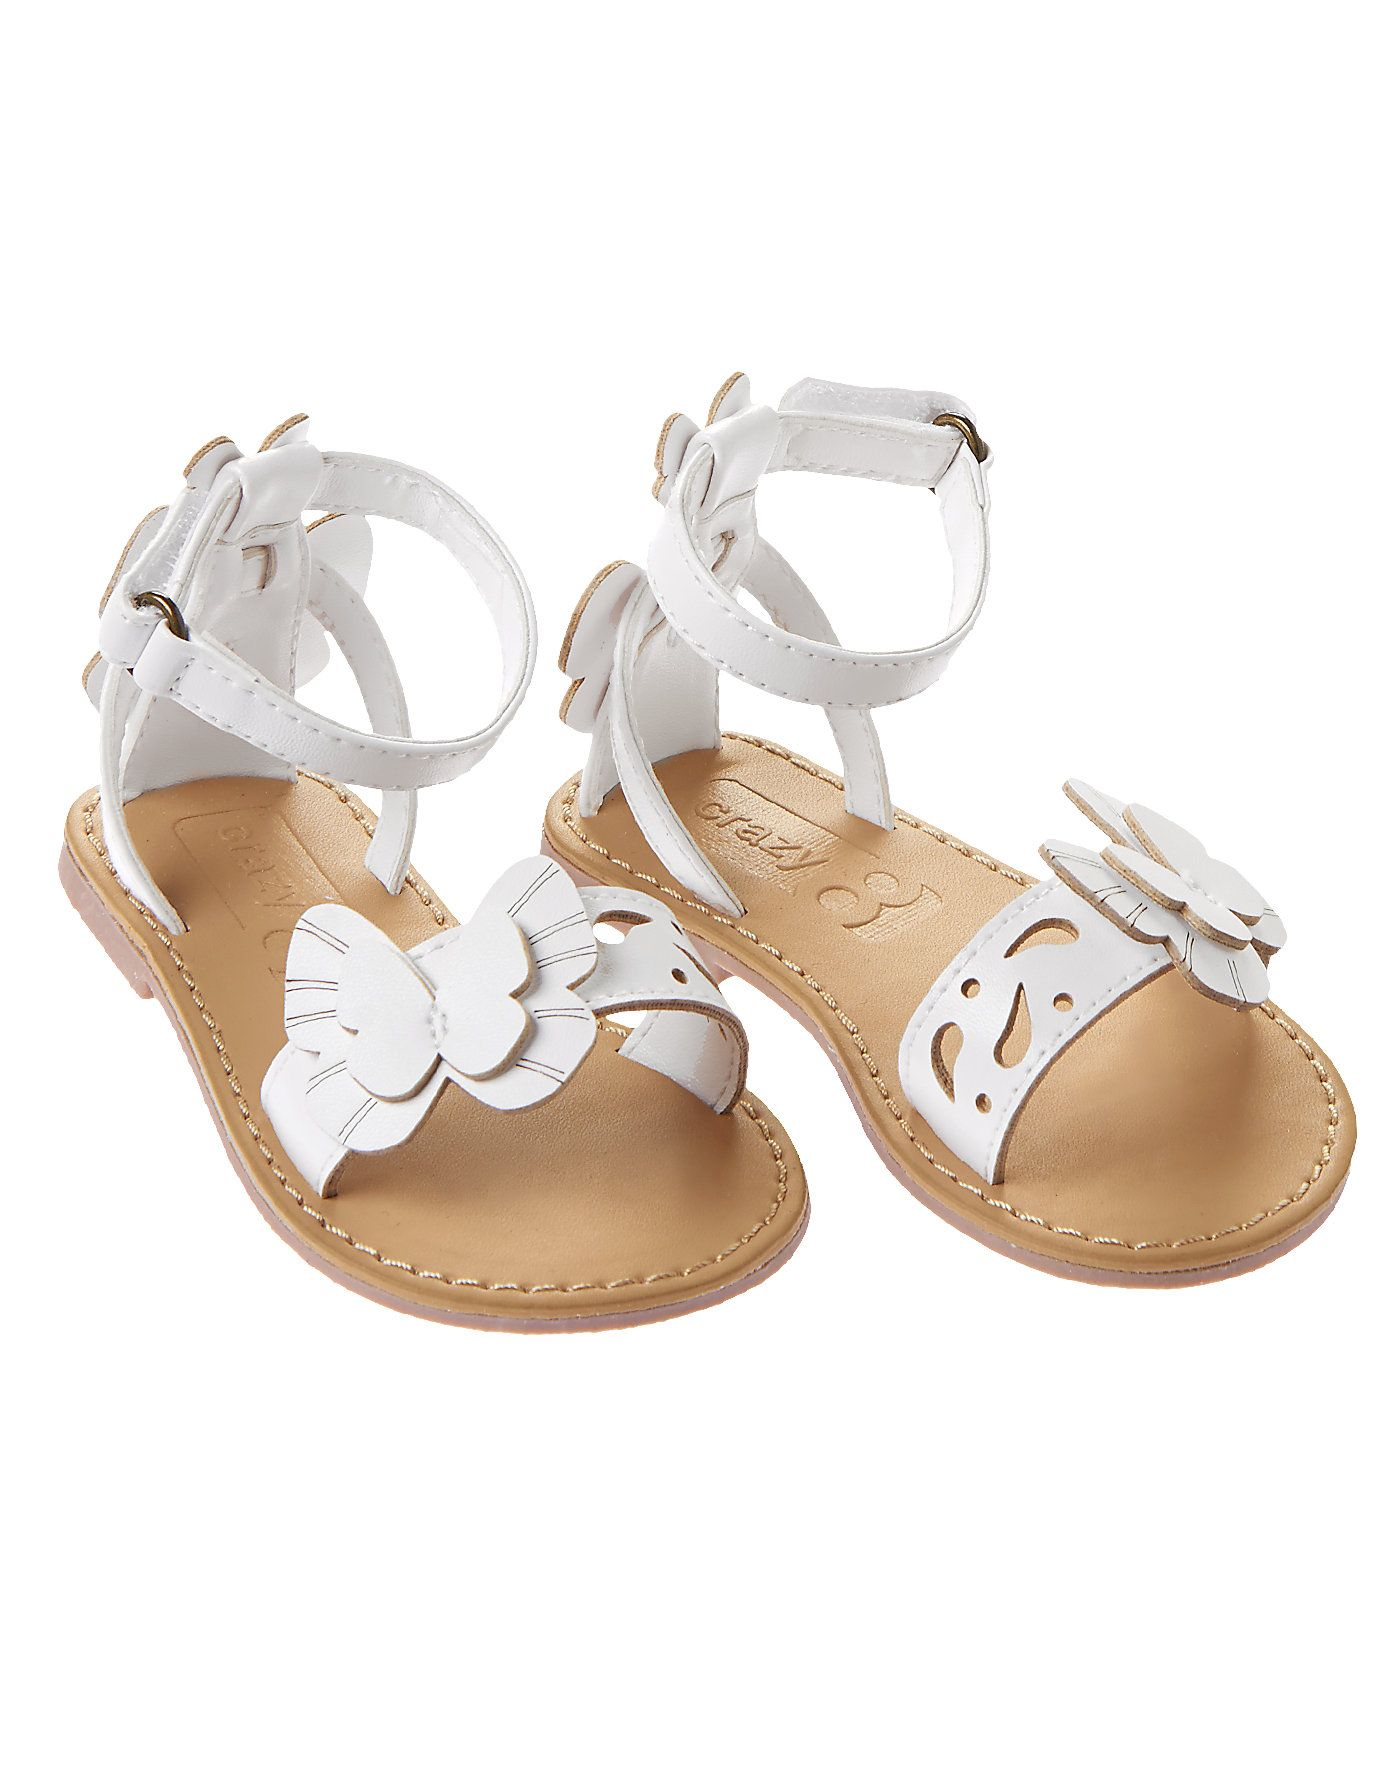 a3947cb4d01 Butterfly Cut-Out Sandals at Crazy 8 Zapatos De Cristal